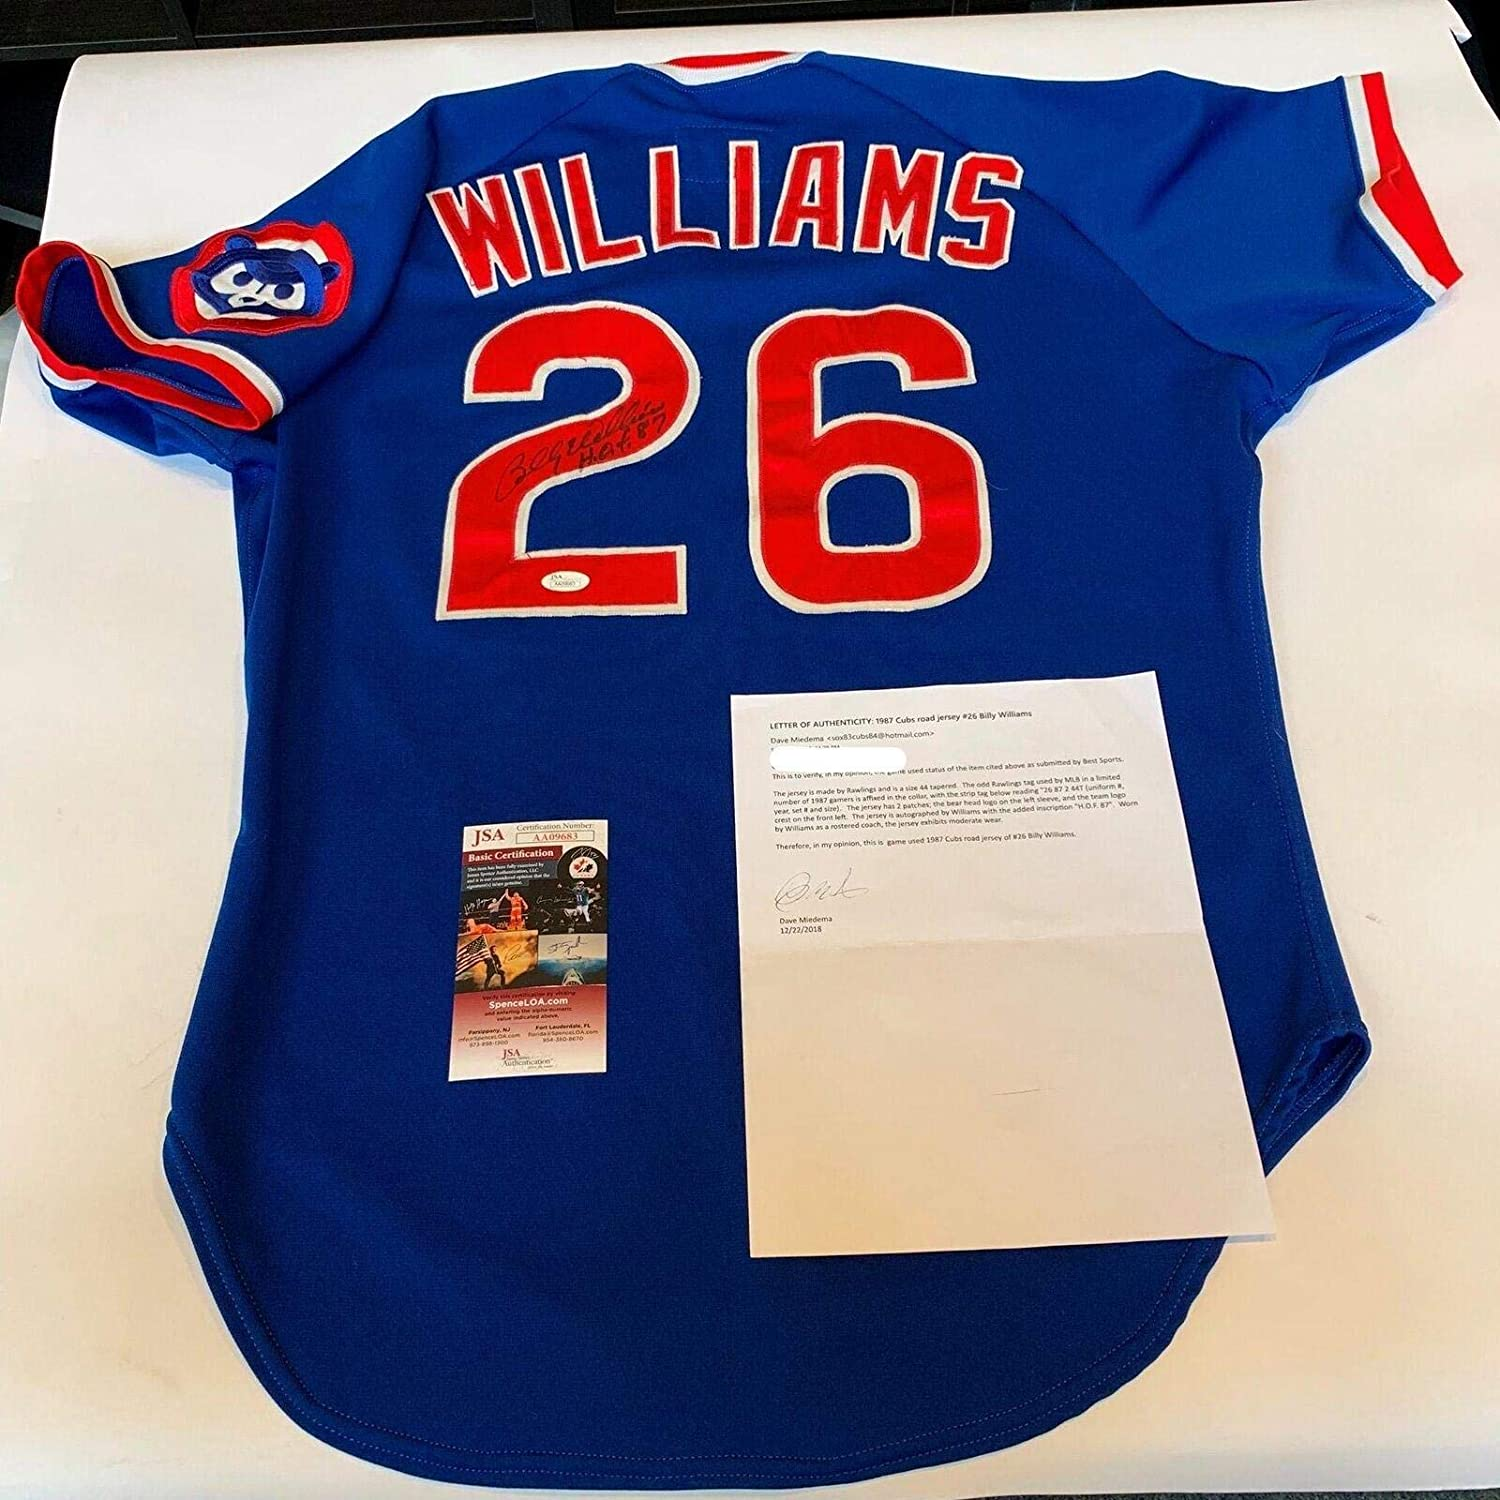 Rare Billy Williams Signed Game Used 1987 Chicago Cubs Jersey & Miedema COA - JSA Certified - MLB Game Used Jerseys